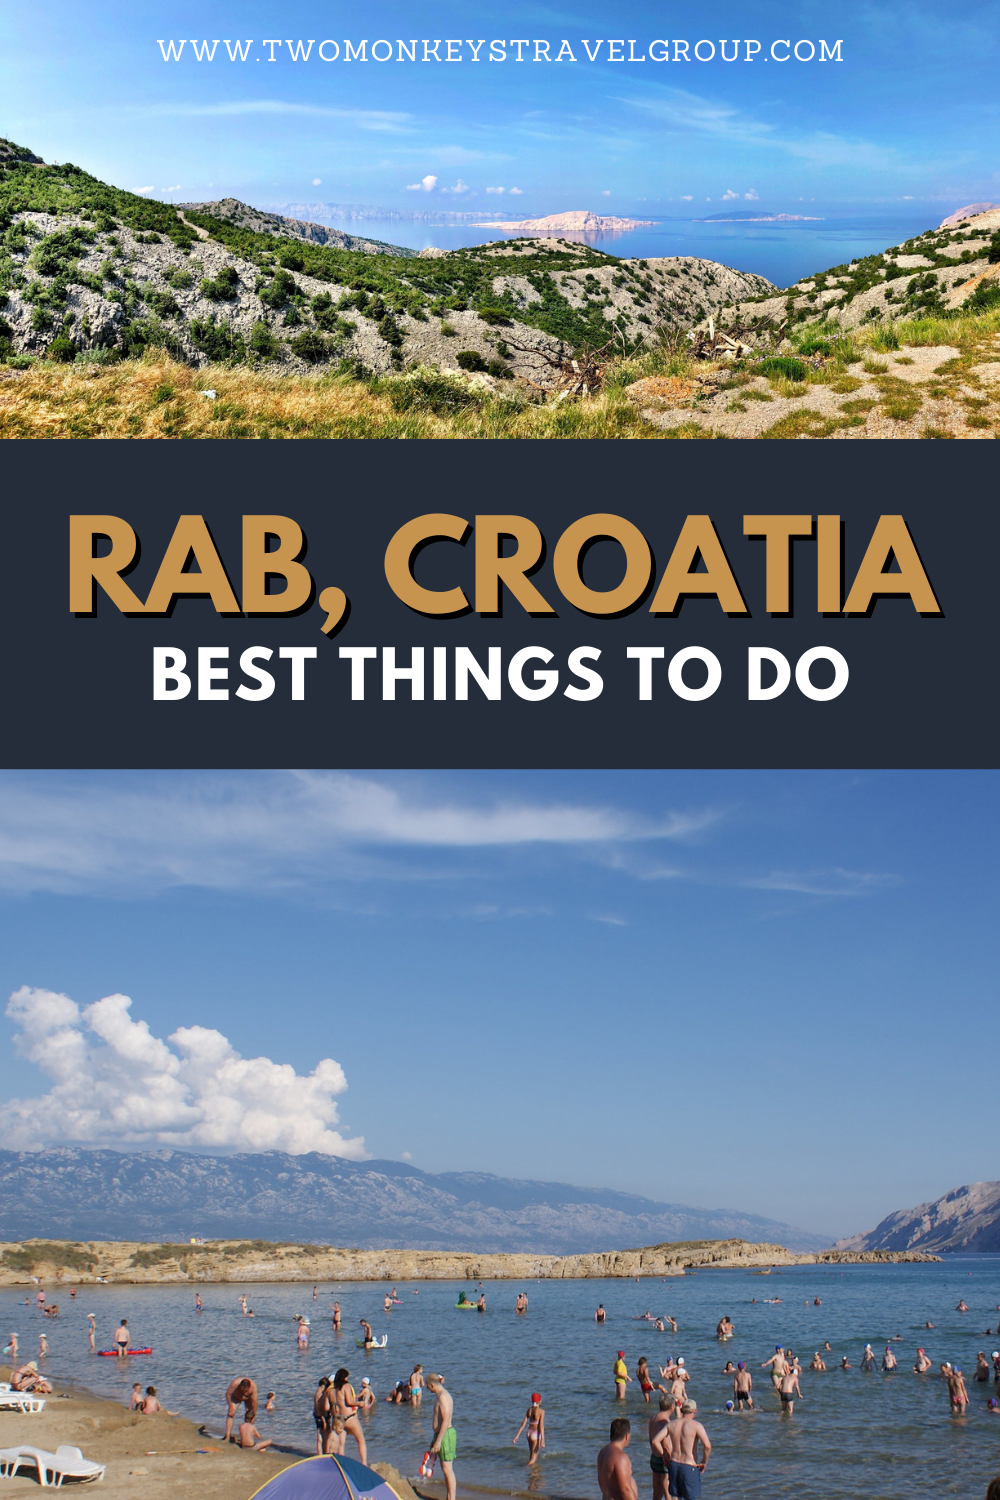 10 Best Things to do in Rab, Croatia and Where to Stay1